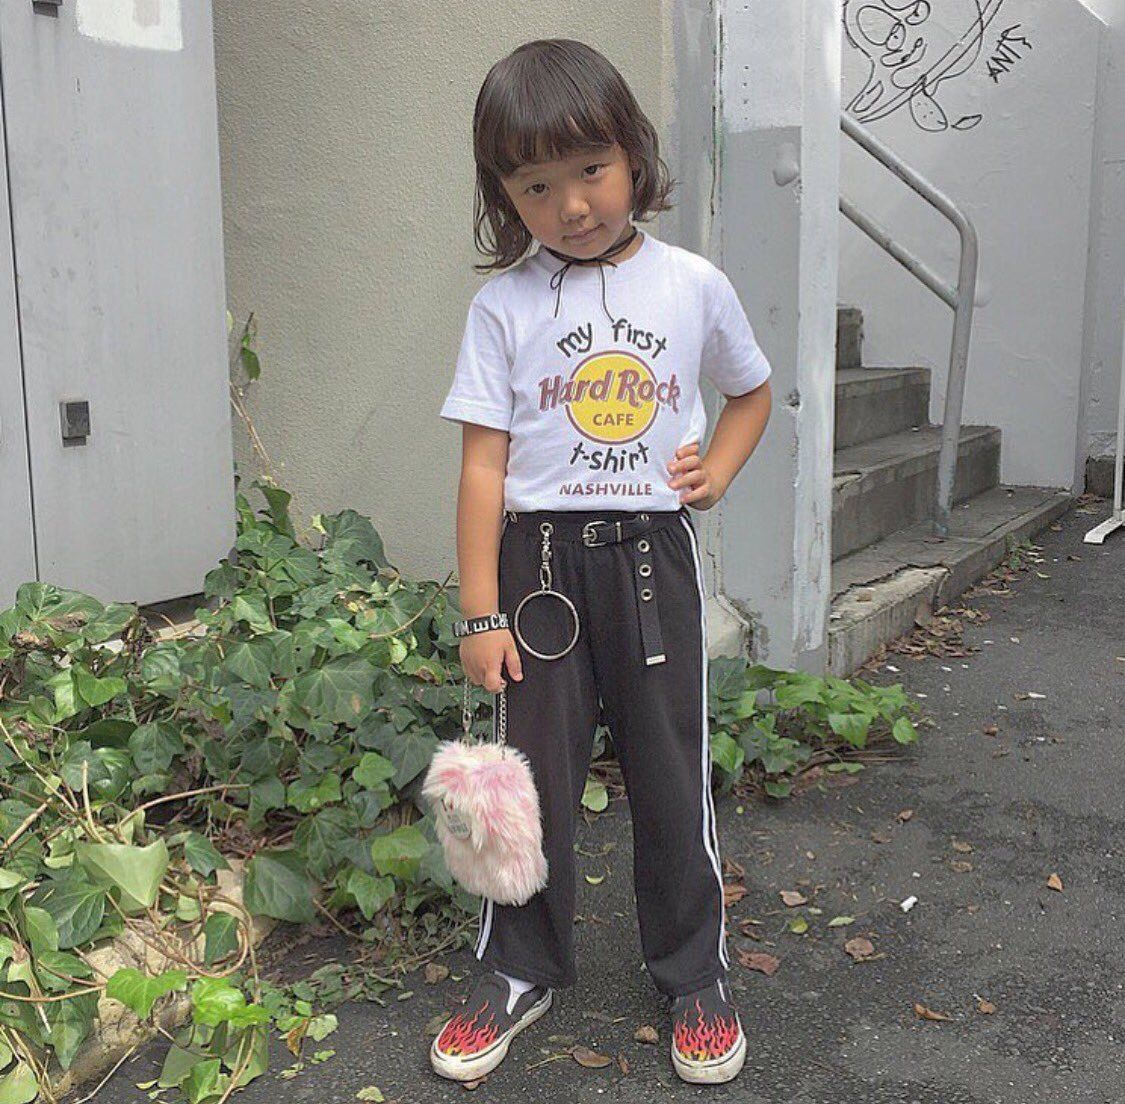 Meet Coco, the 6-year-old Instagram star taking the fashion world by storm.